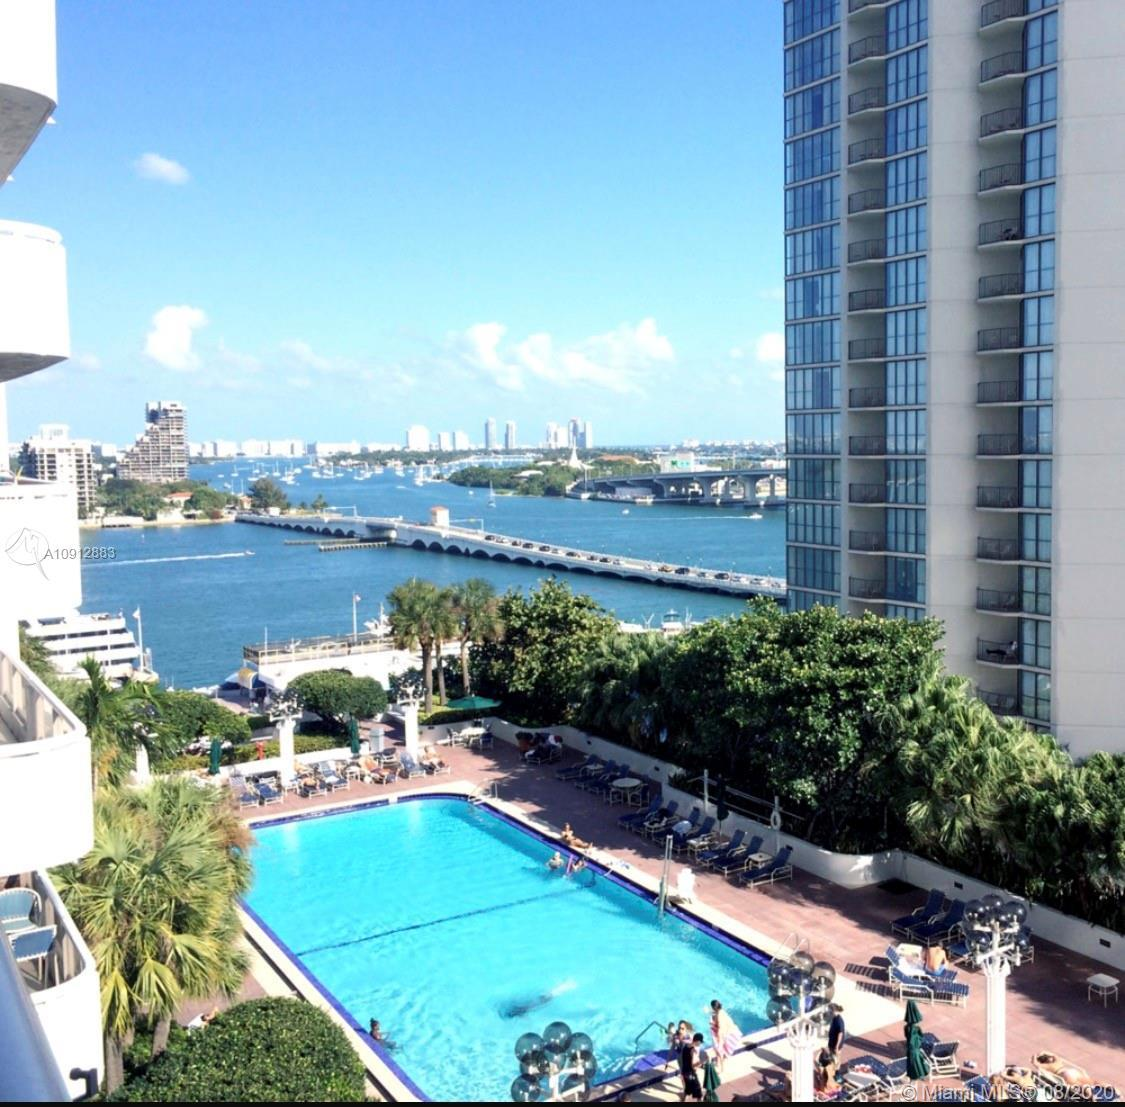 Resort living 3 bedroom 3 bath. IN THE MIDDLE OF THE ARTS AND ENTERTAINMENT DISTRICT YOU ARE ABLE TO